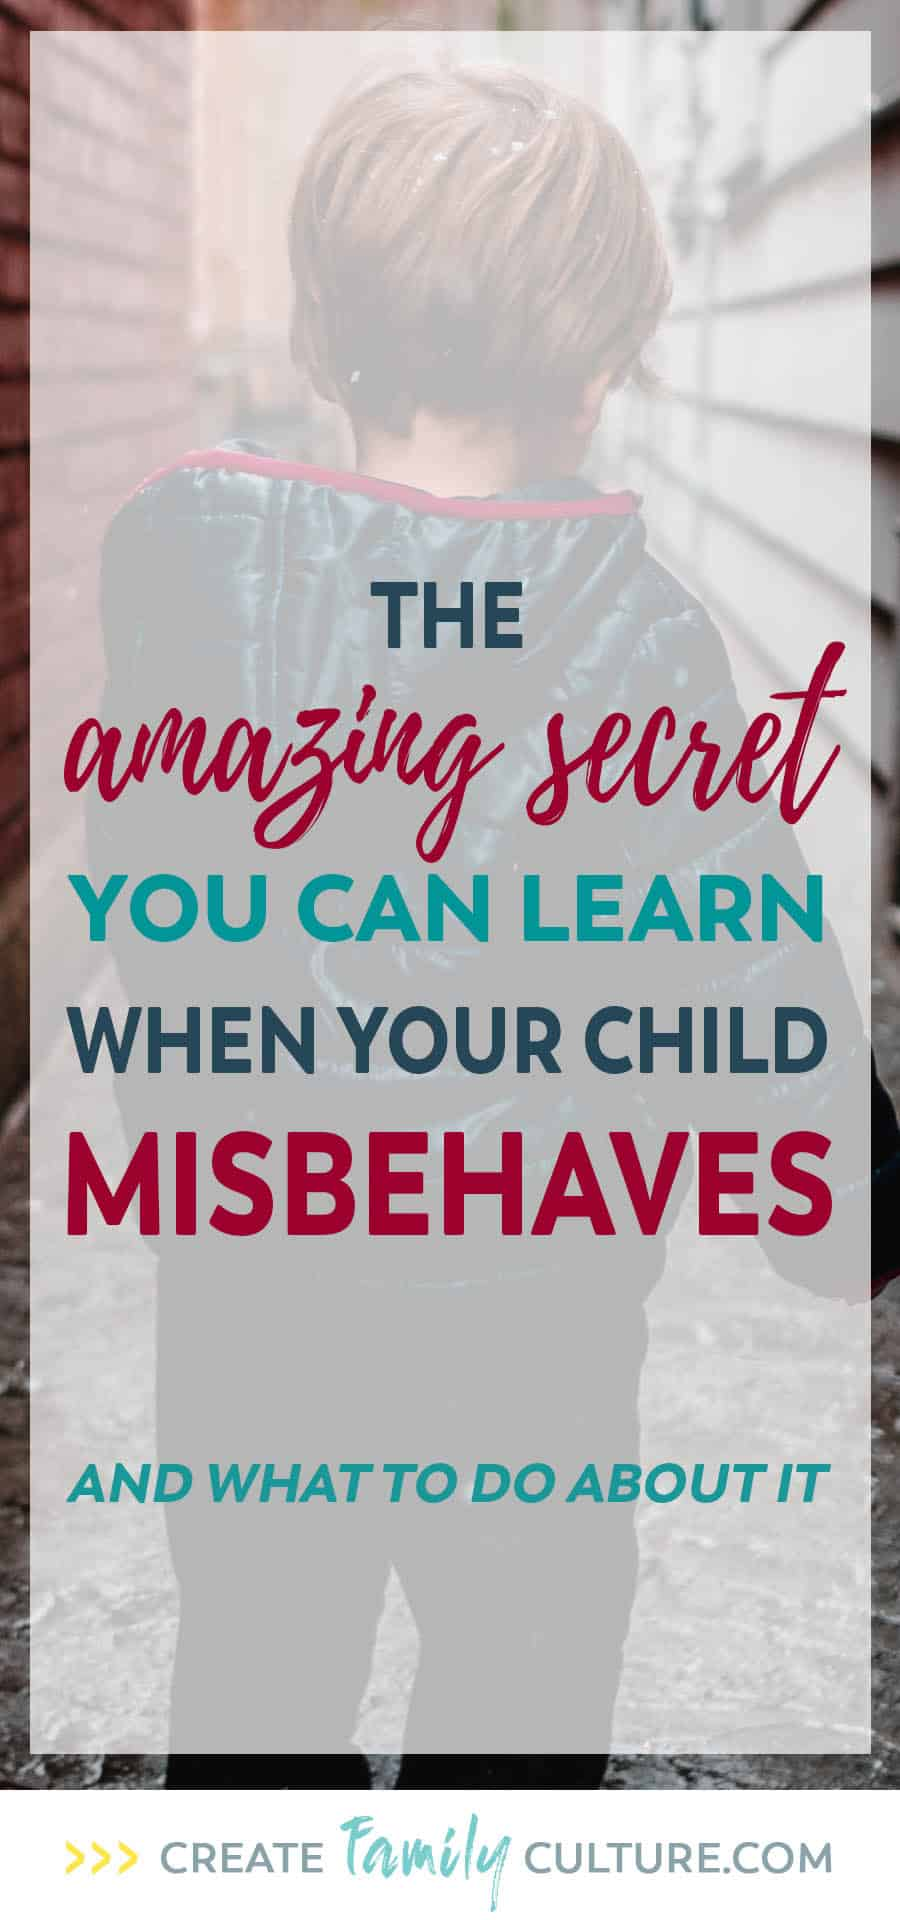 The Amazing Secret You Can Learn When Your Child Misbehaves. Learn How to Use Your Kids' Bad Behavior to Bring Out Their Strengths | Parenting Tips on Discipline | Intentional Parenting #parentingtips #discipline